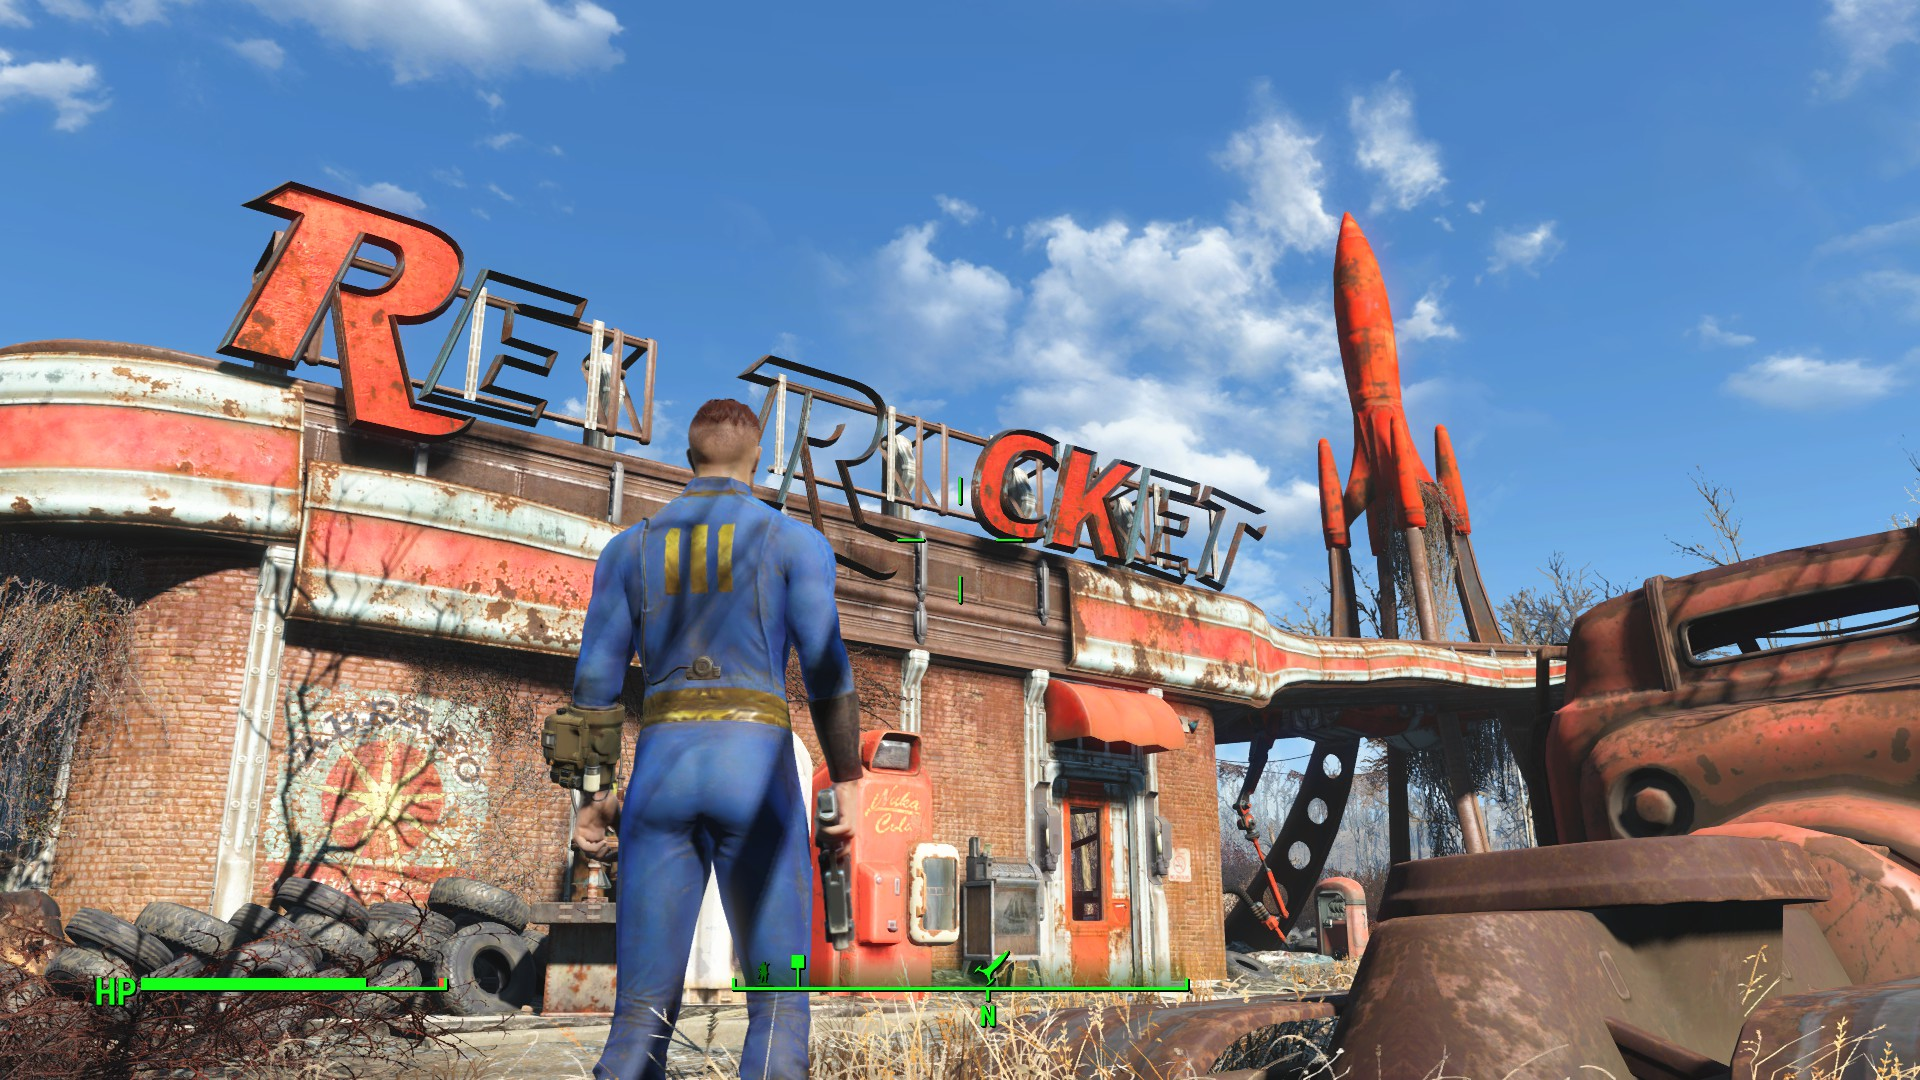 More fallout 4 pc gameplay screenshots was leaked How to make your own house in fallout 3